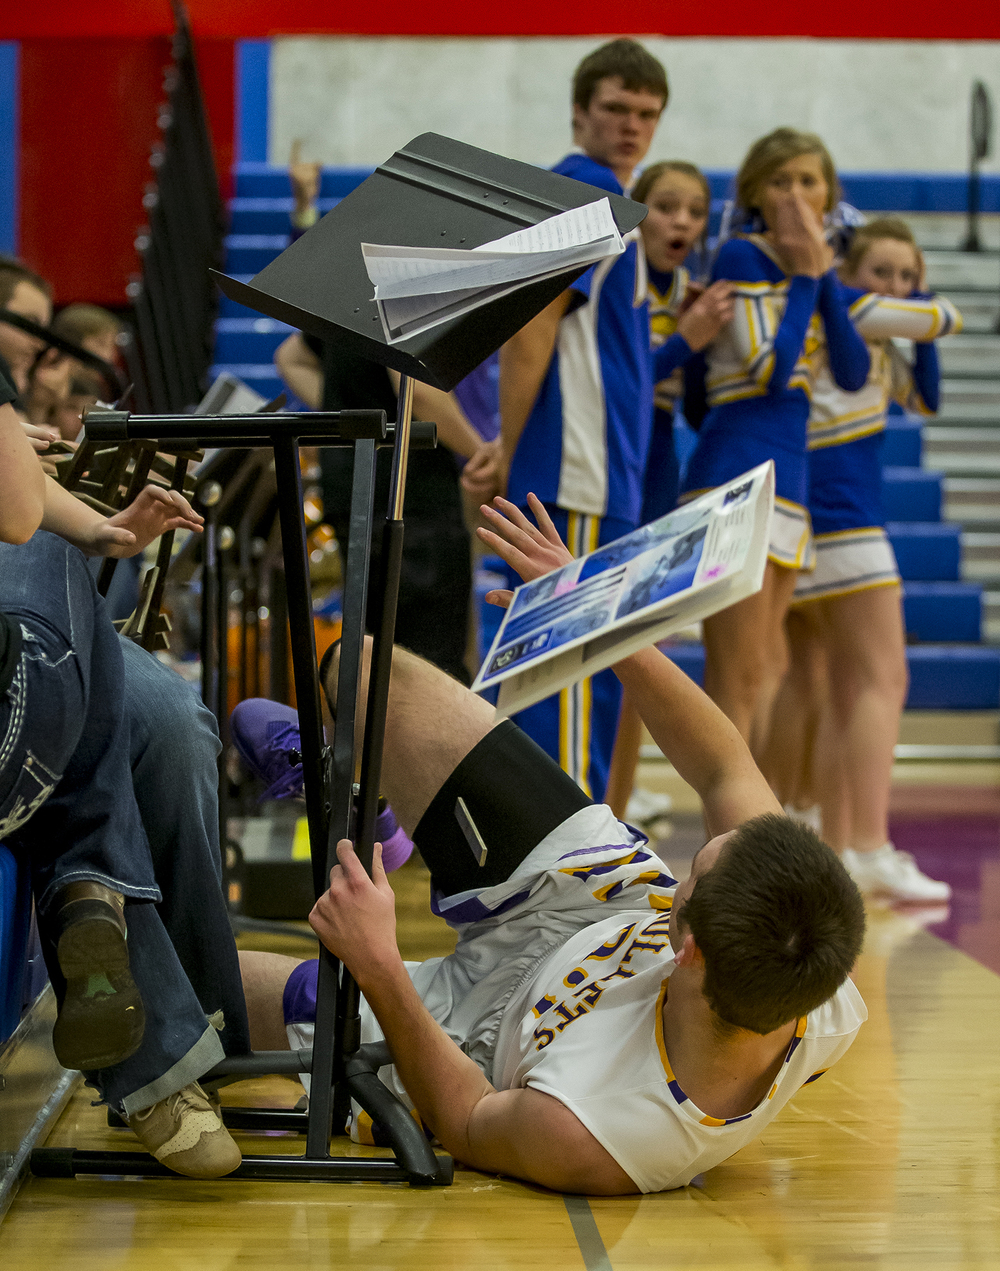 Williamsville High School's Jacob Lounsberry crashes into the Williamsville band section during the Sangamon County Boys Basketball Tournament at Lincoln Land Community College's Cass Gymnasium, Monday, Jan. 13, 2014. Justin L. Fowler/The State Journal-Register